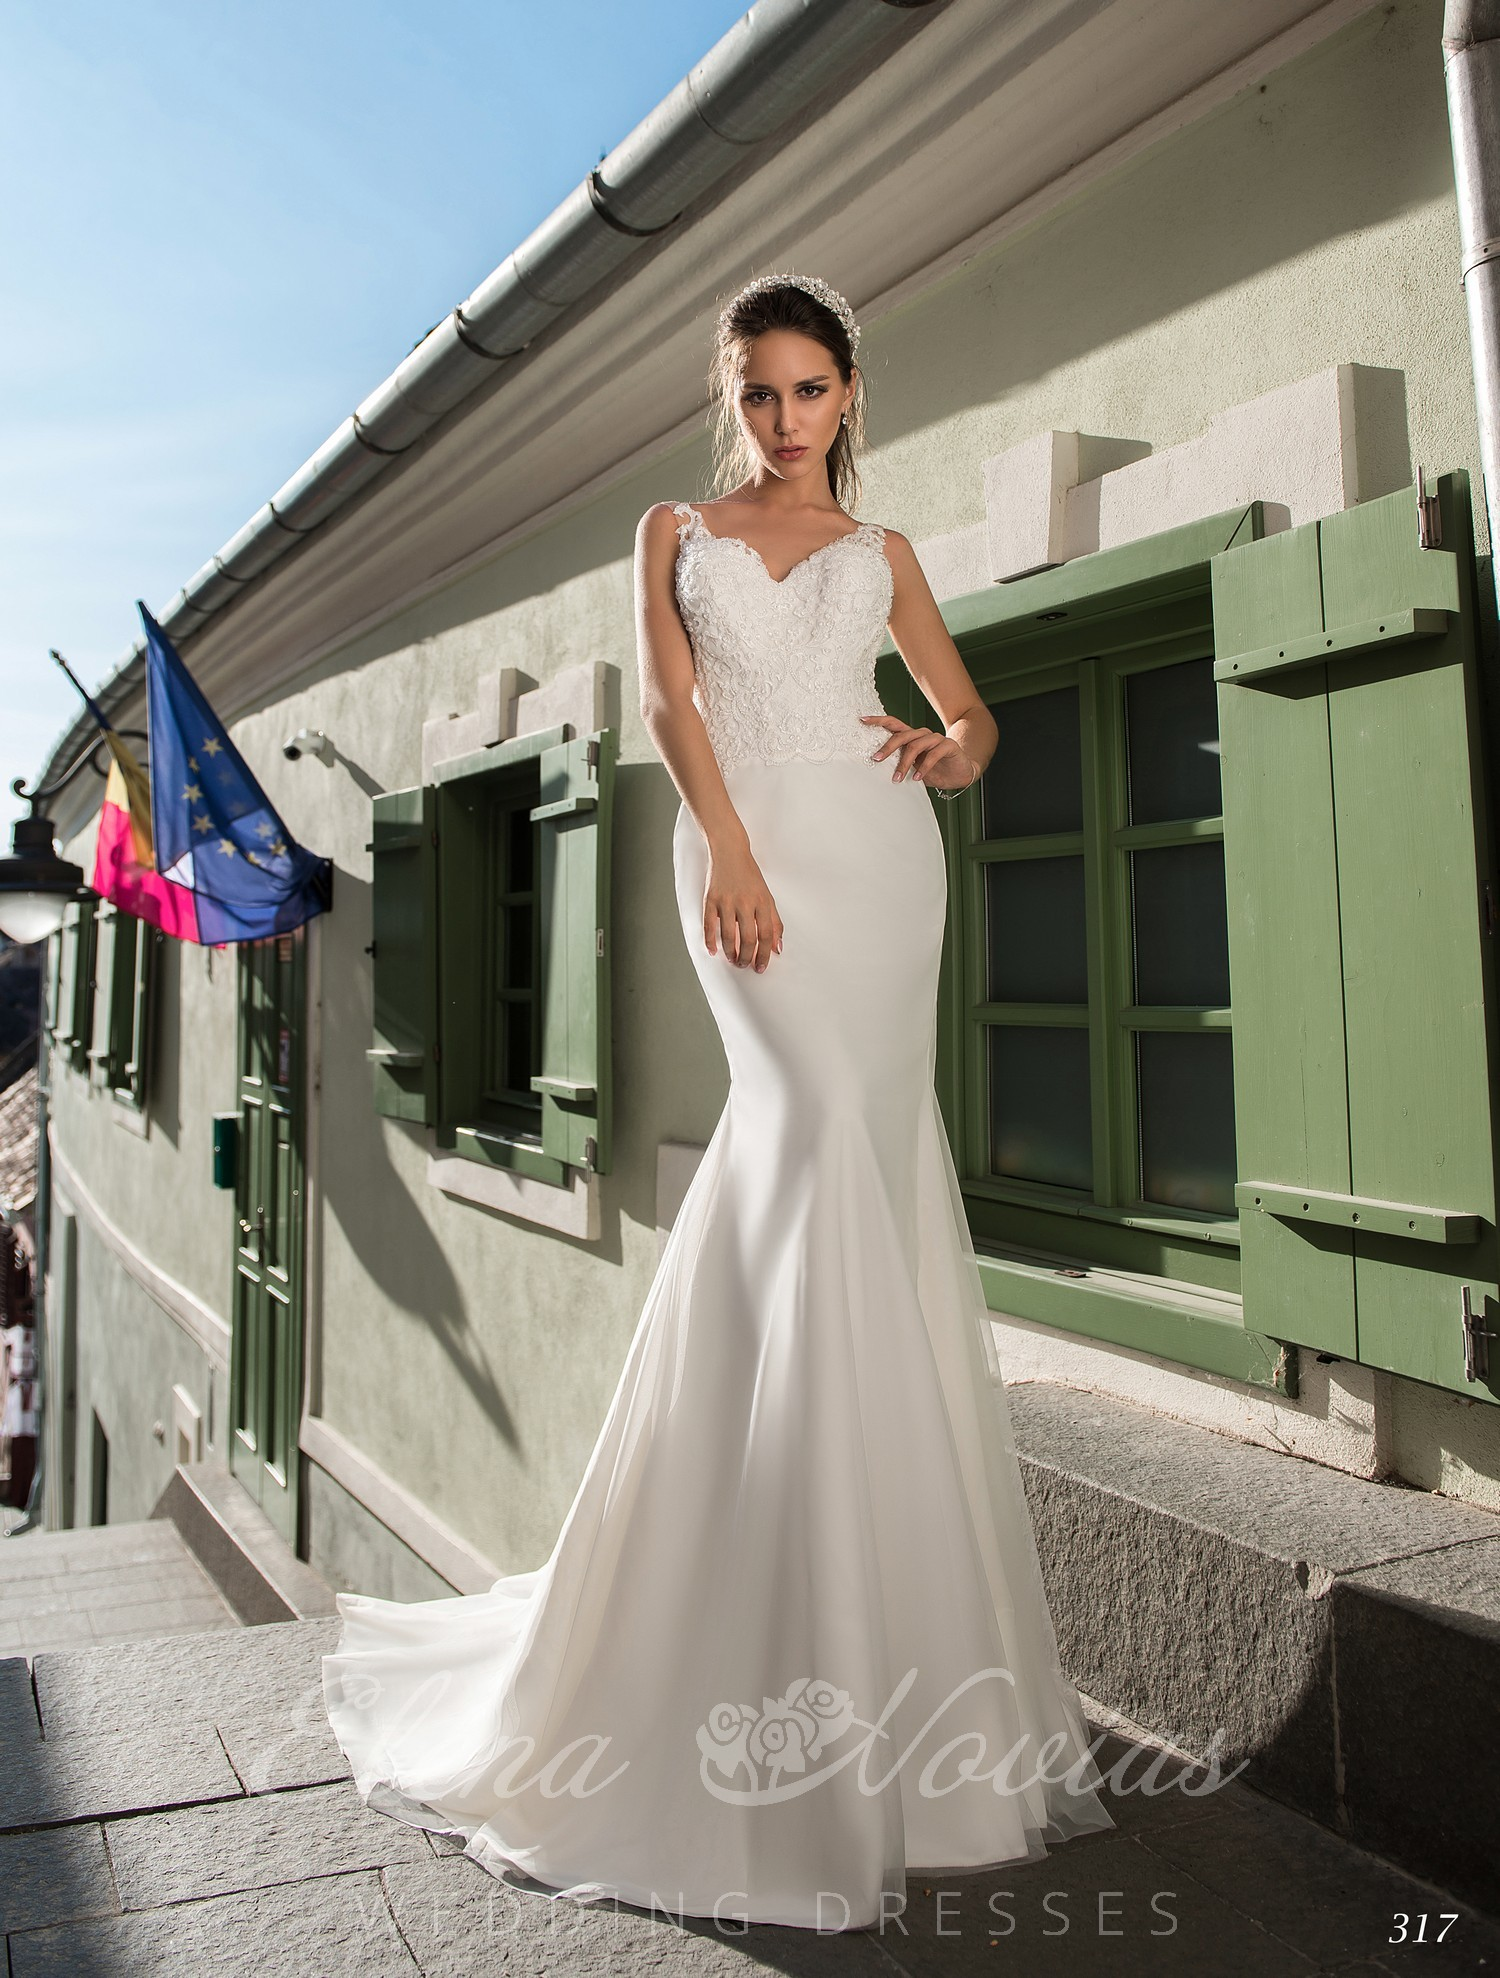 A tight wedding dress with straps on wholesale